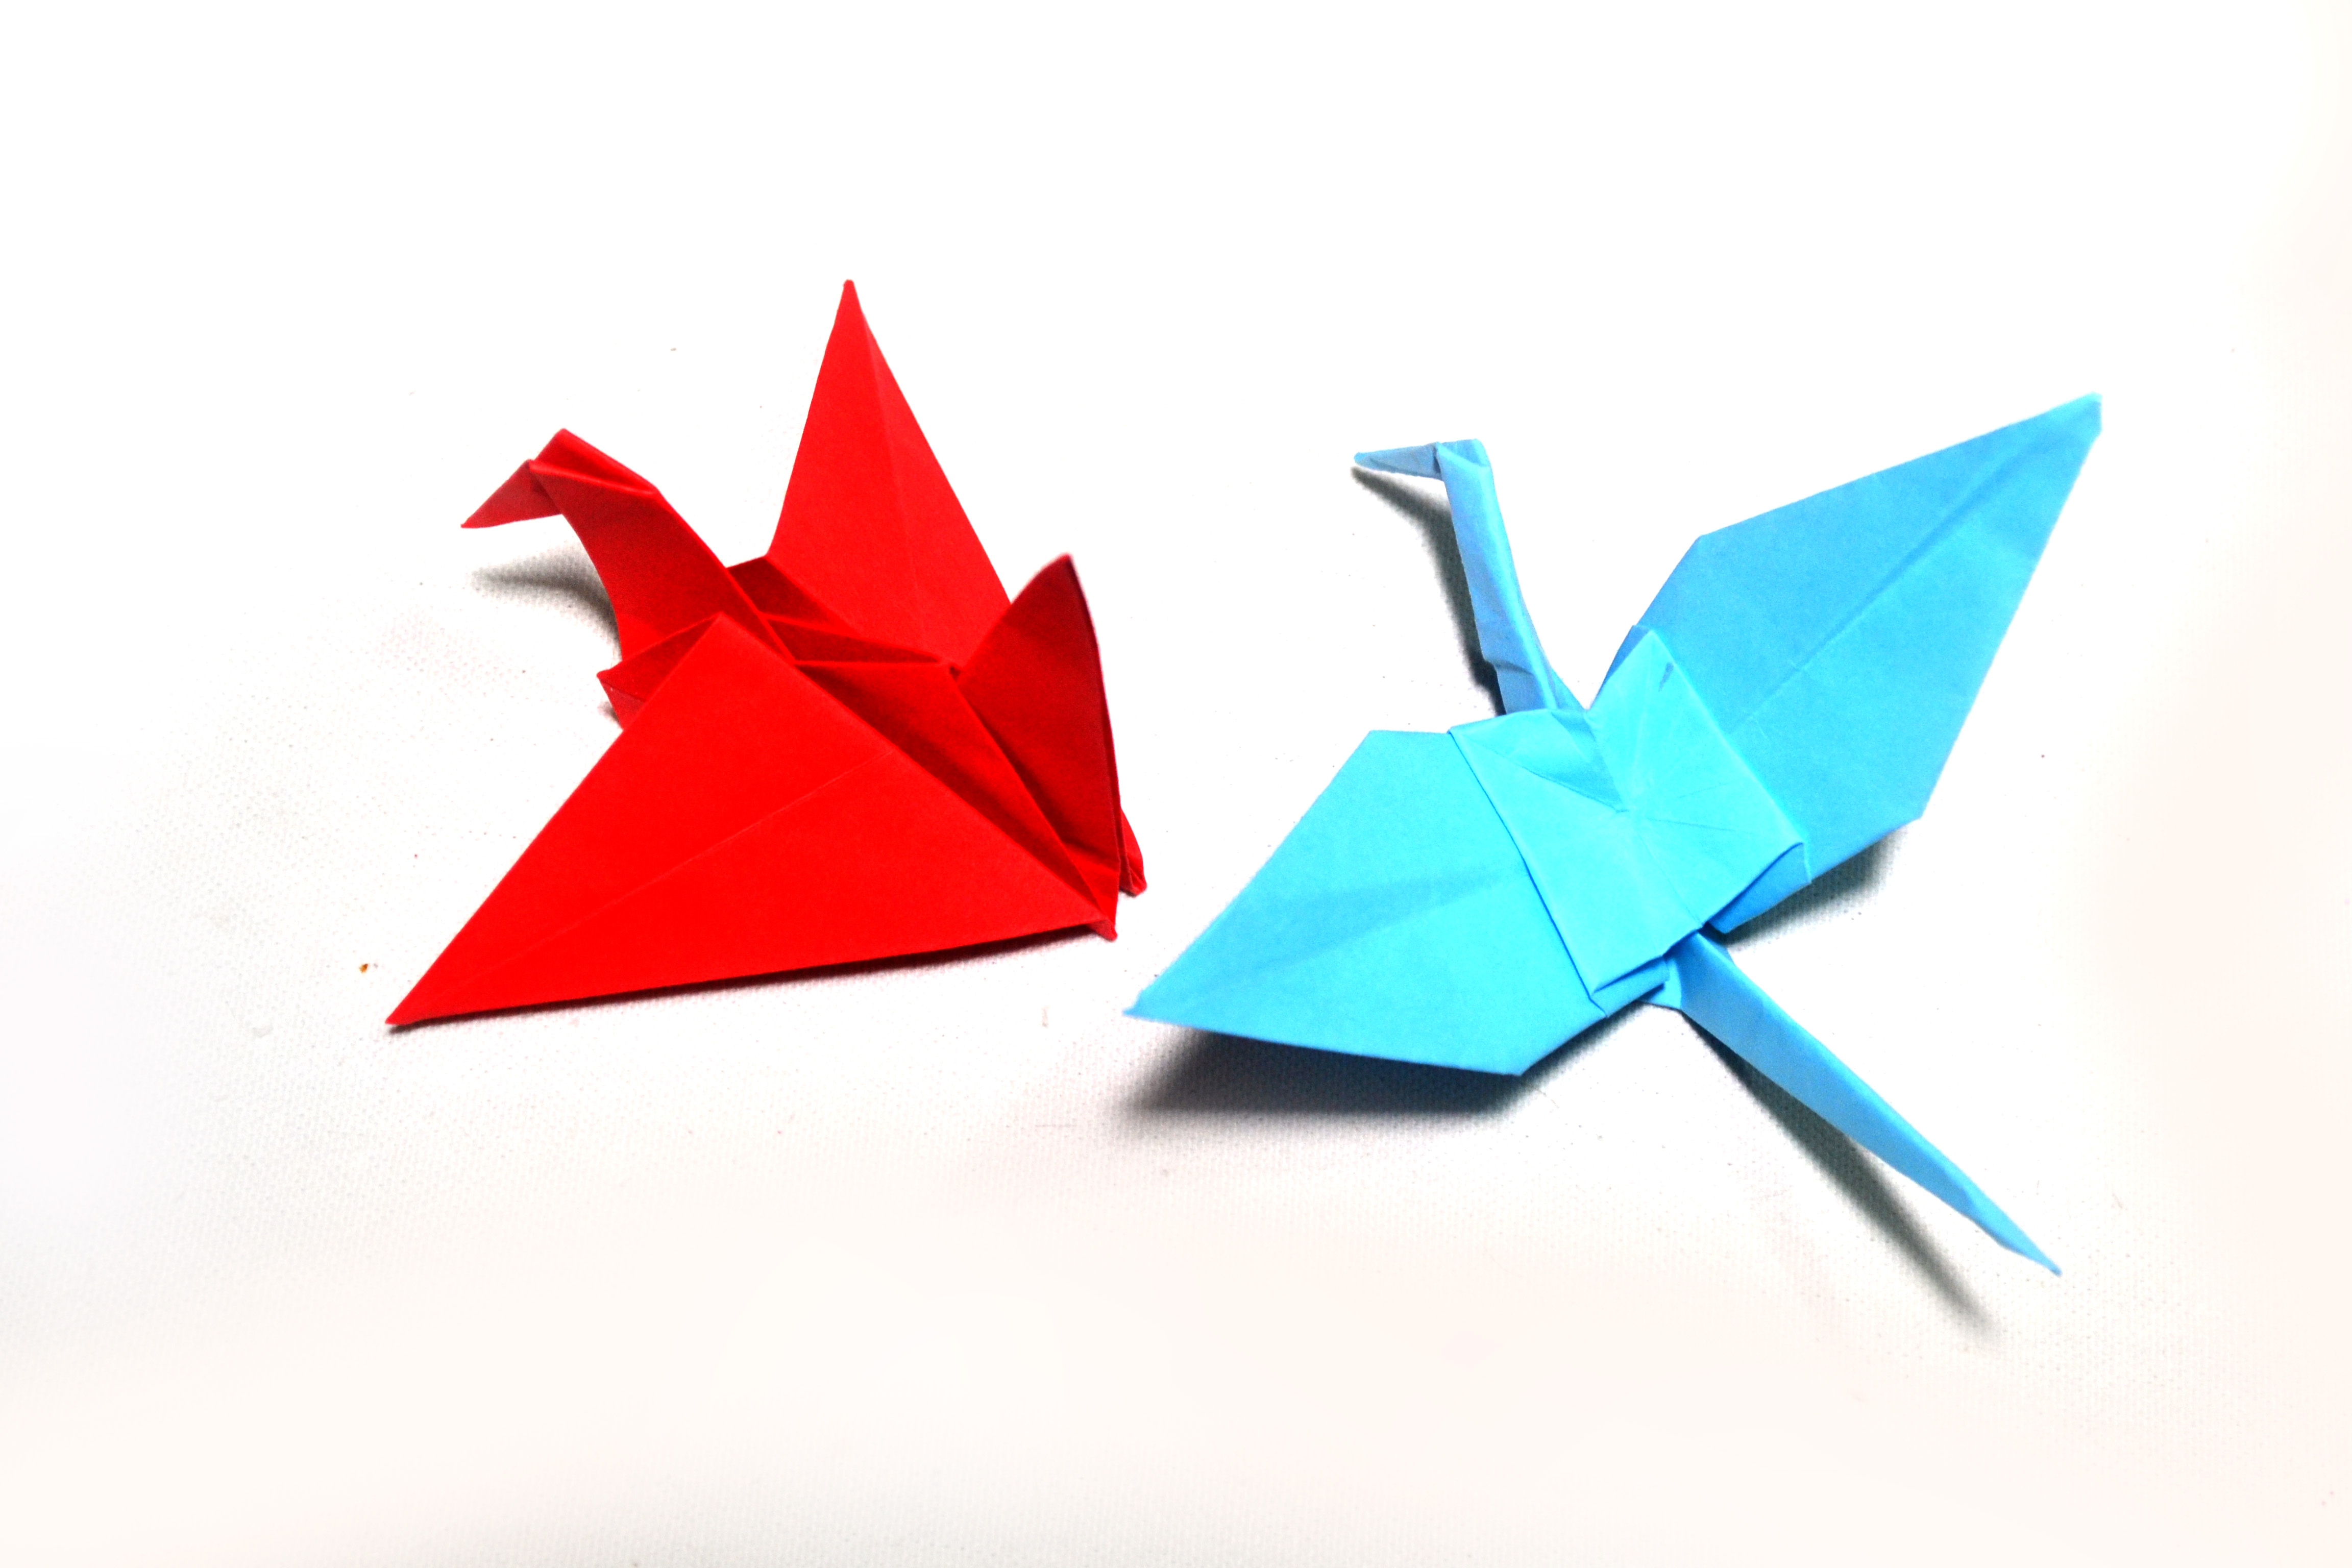 How To Make A Bird With Origami How To Make Origami Birds With Pictures Wikihow